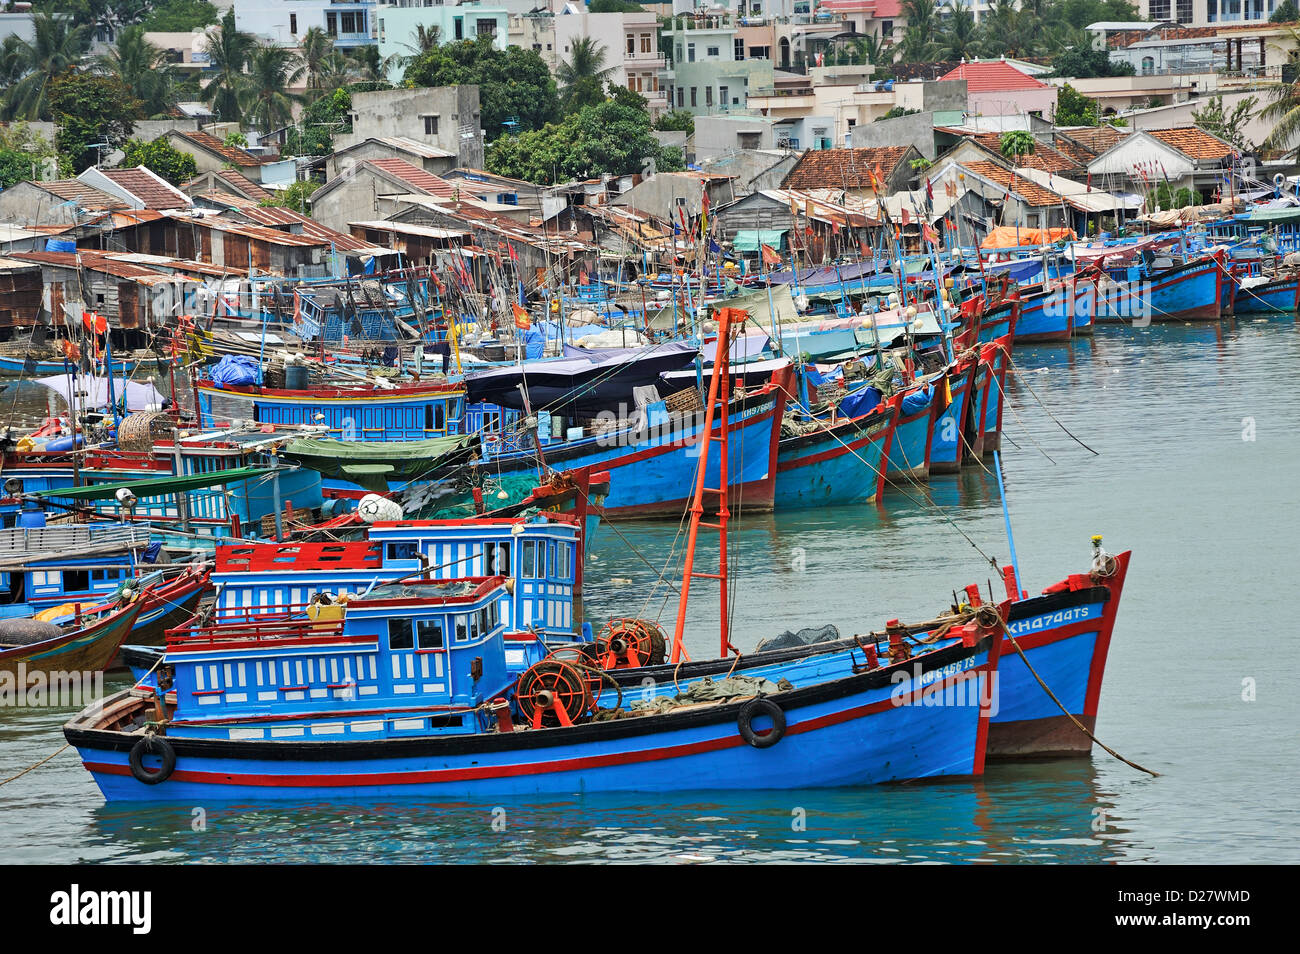 Fishing fleet at harbor, Nha Trang, Vietnam - Stock Image